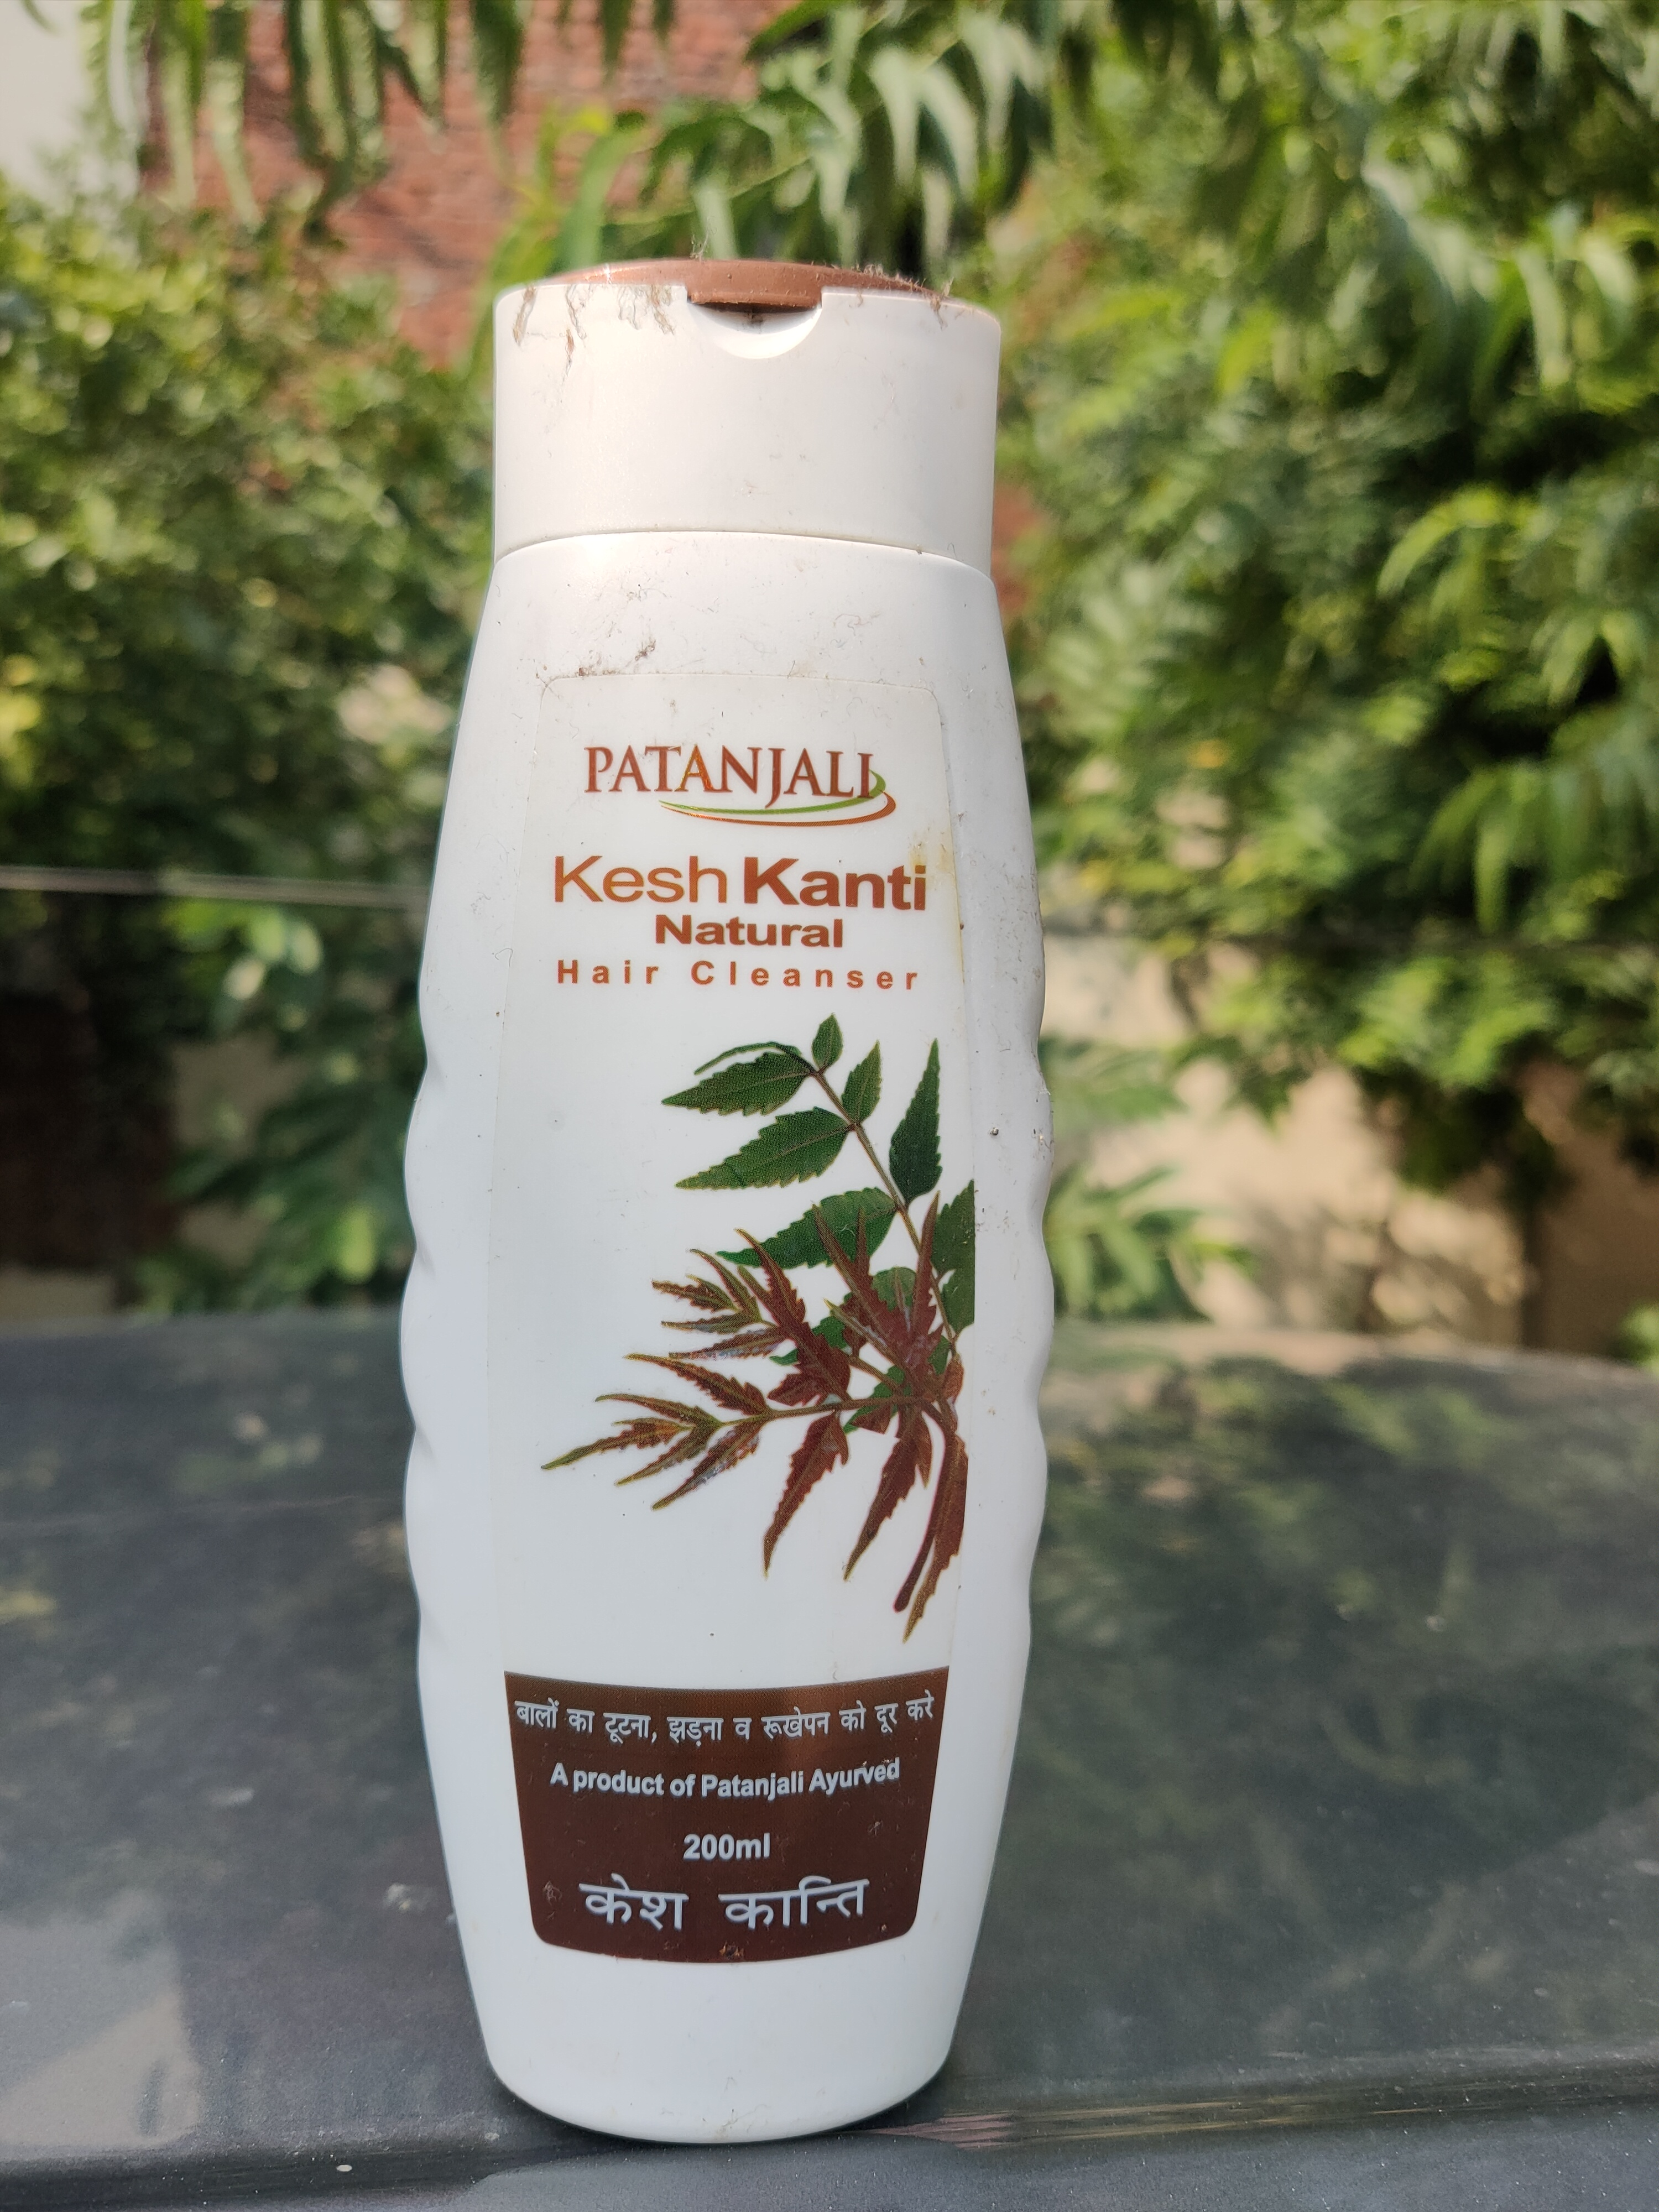 Patanjali Kesh Kanti Natural Hair Cleanser-Controls Hairfall and Greying-By suhanigaba